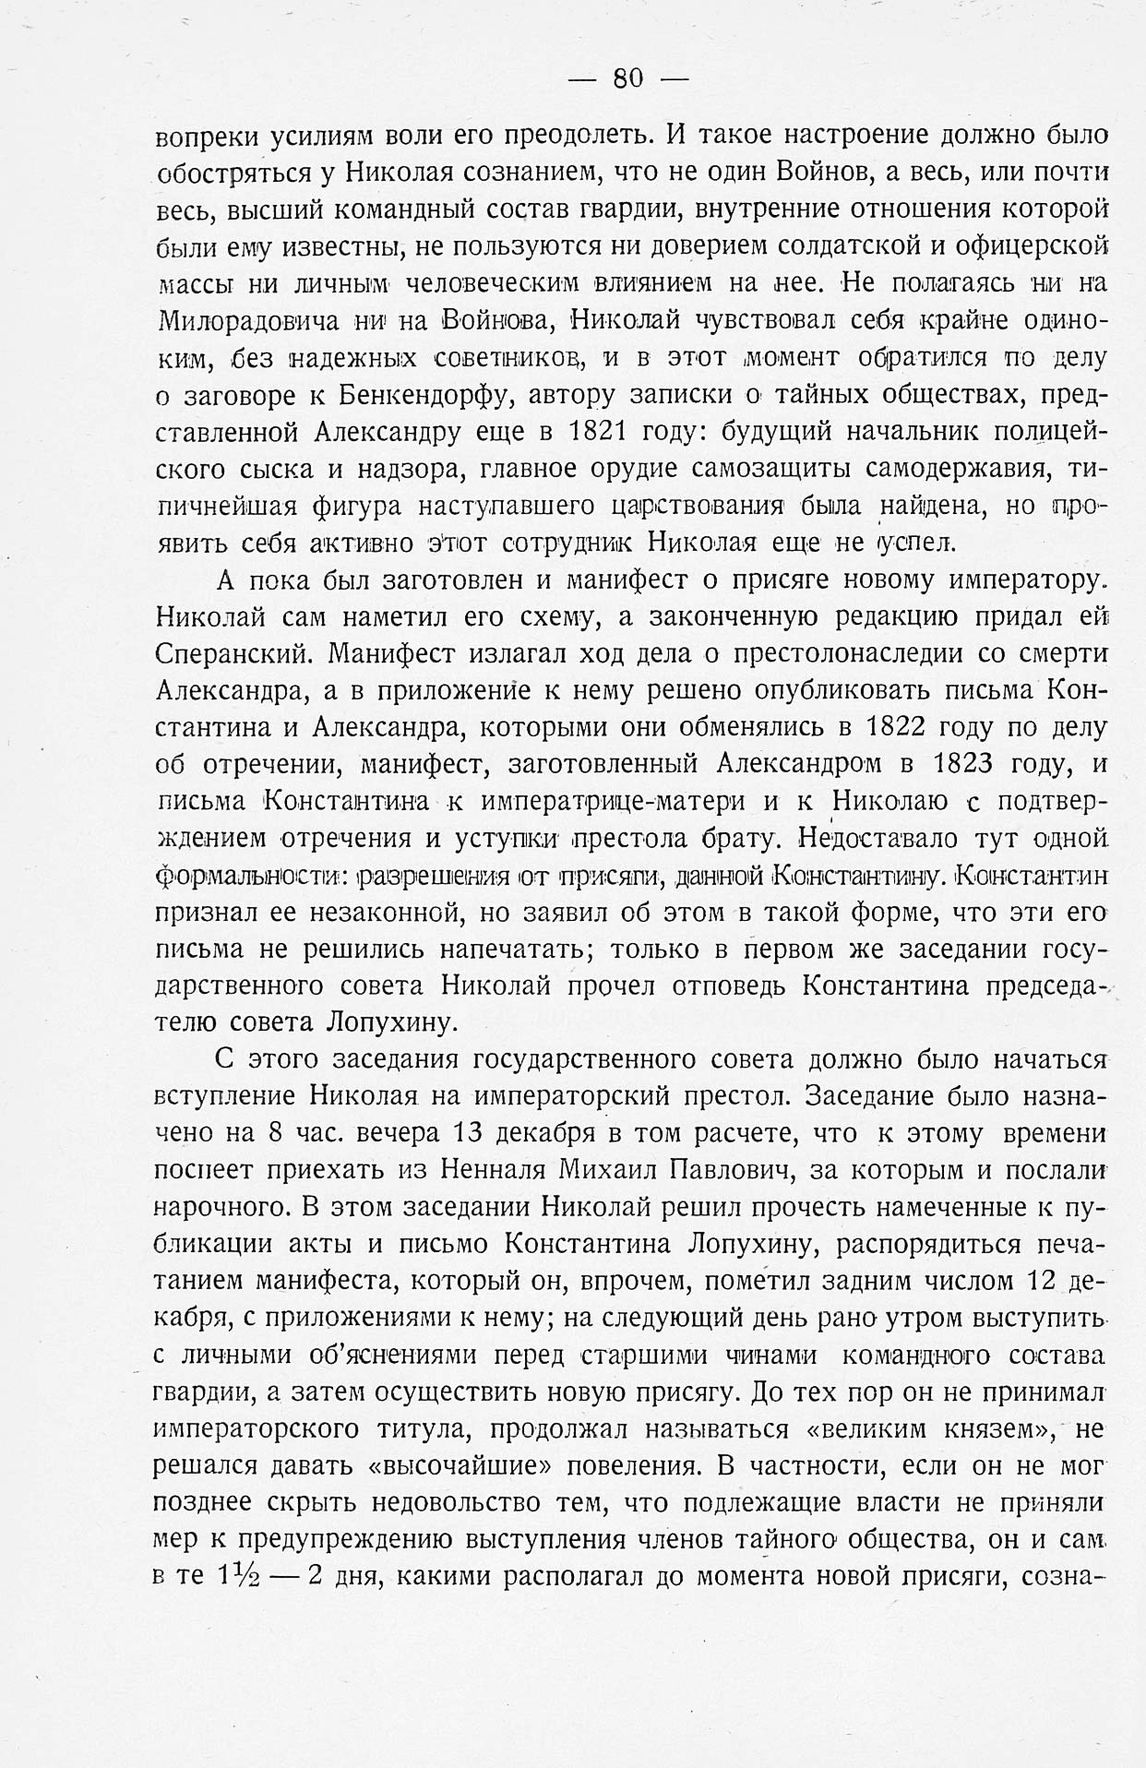 http://elib.shpl.ru/pages/565977/zooms/7